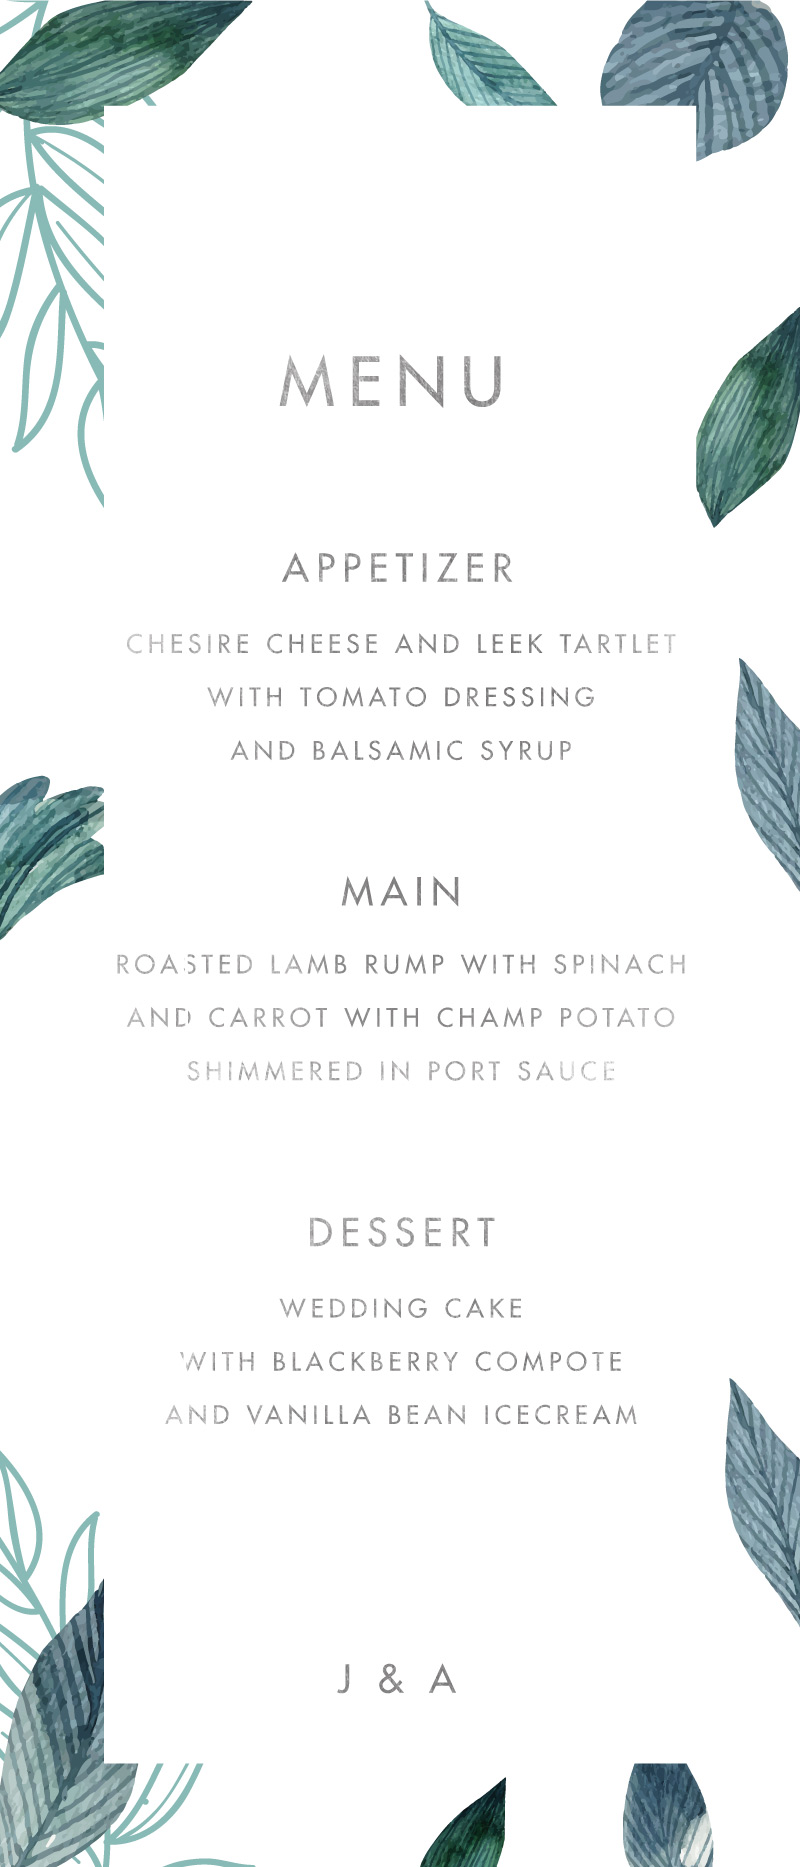 Stylistically Green - Menu